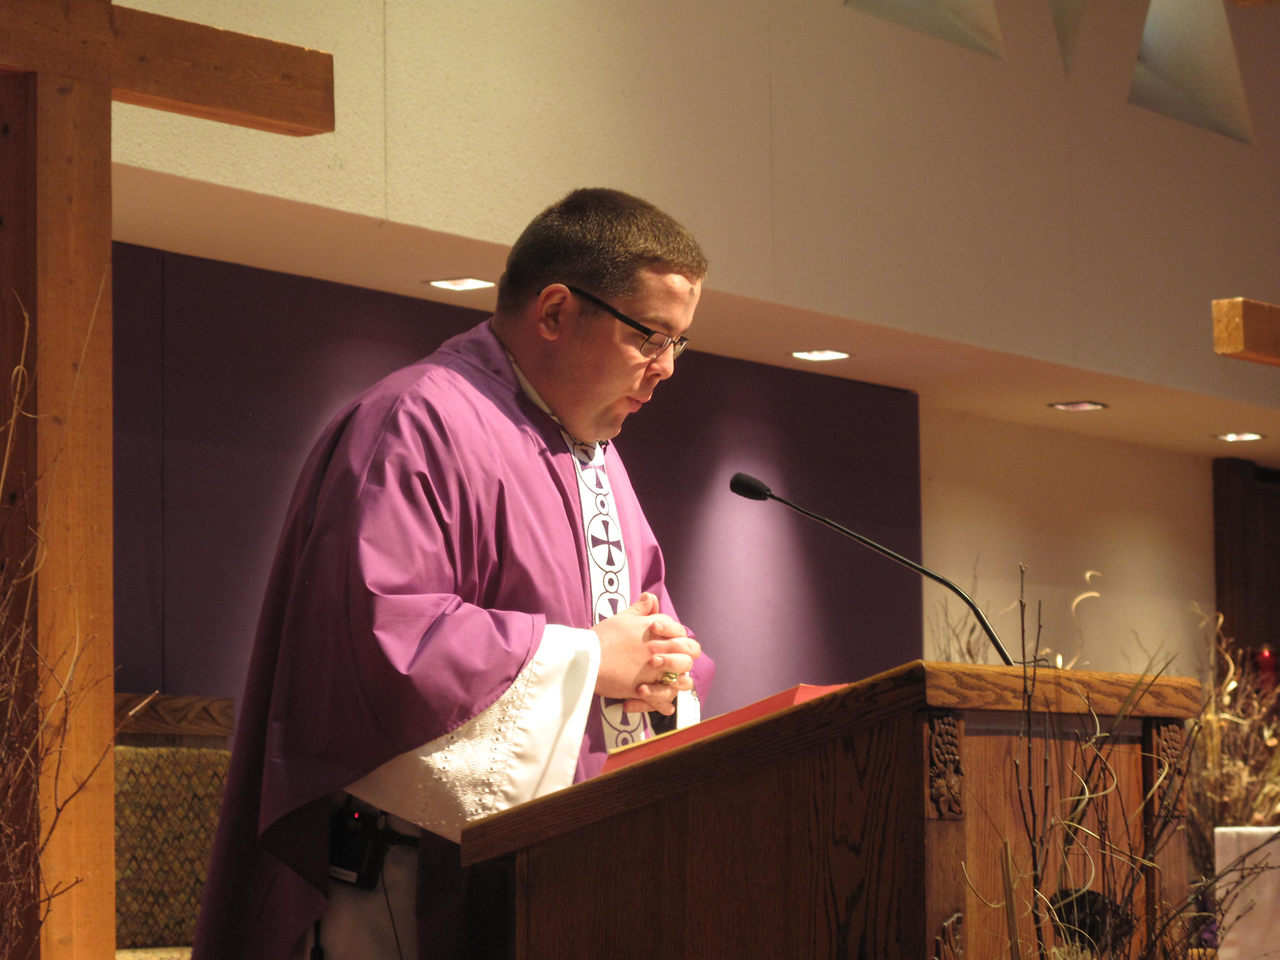 ELIZABETH DOBBINS/GAZETTE The Rev. Rob Ramser reads from the Bible at St. Ambrose's Ash Wednesday Mass.